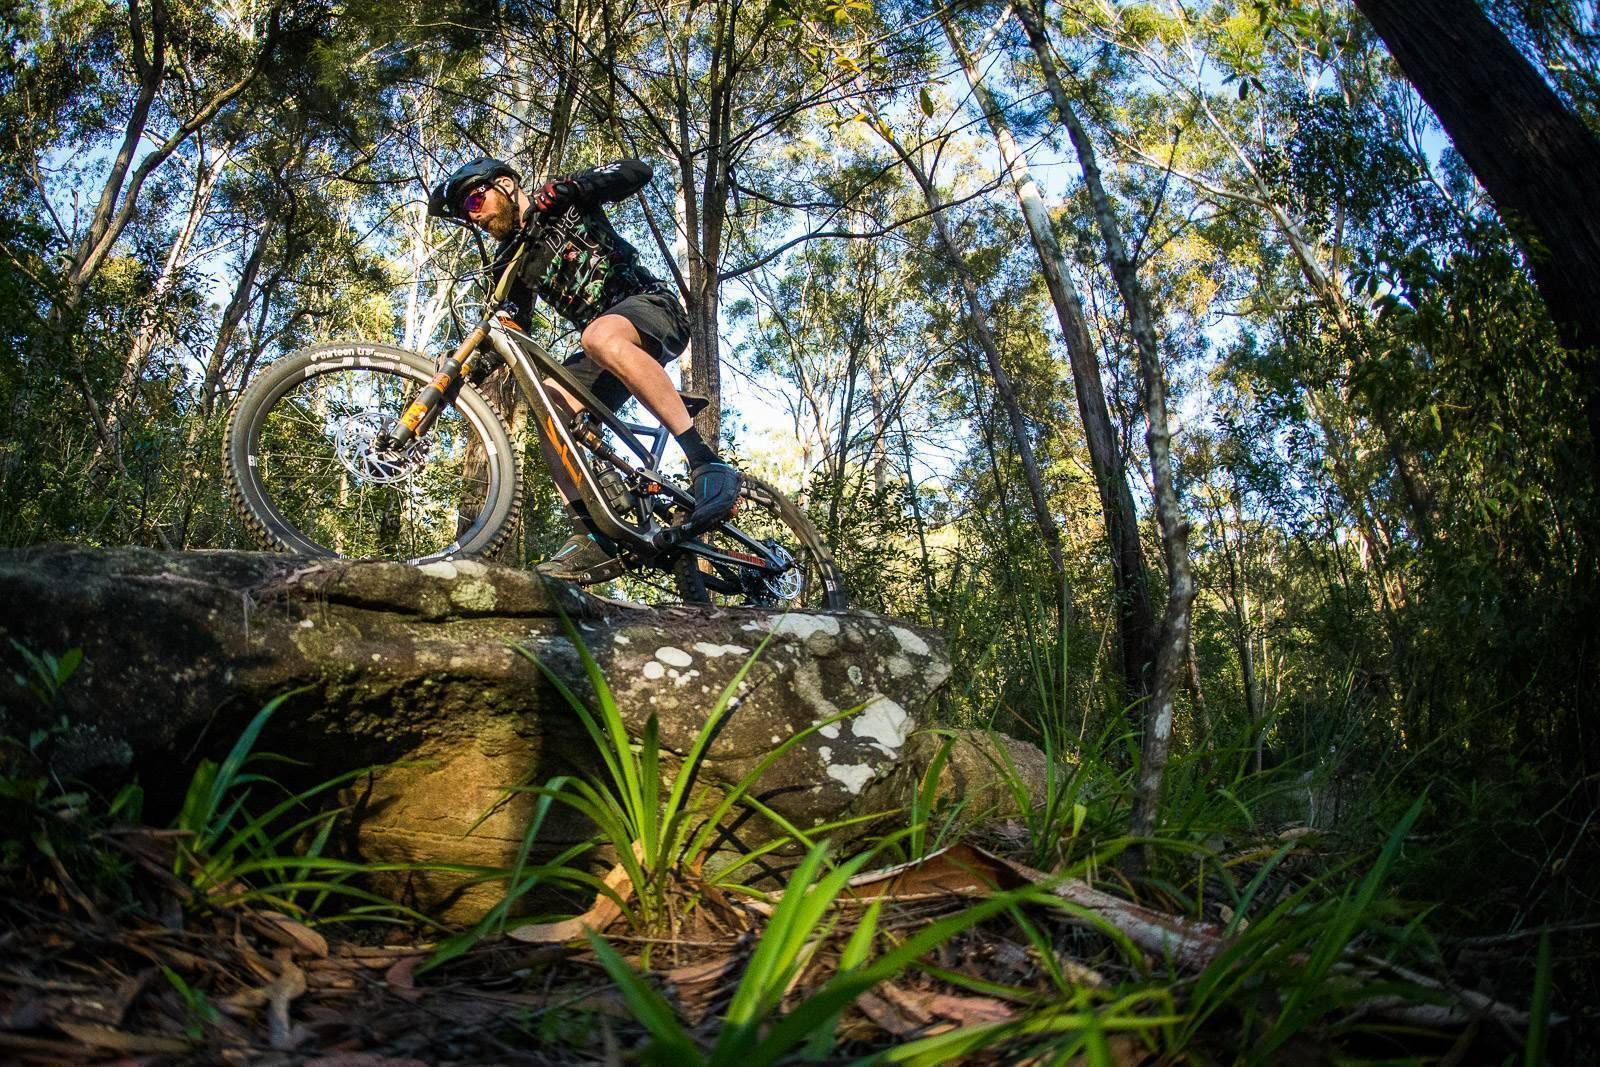 de32abd70f4 TESTED: YT IND. JEFFSY CF PRO RACE 27 - Australian Mountain Bike | The home  for Australian Mountain Bikes